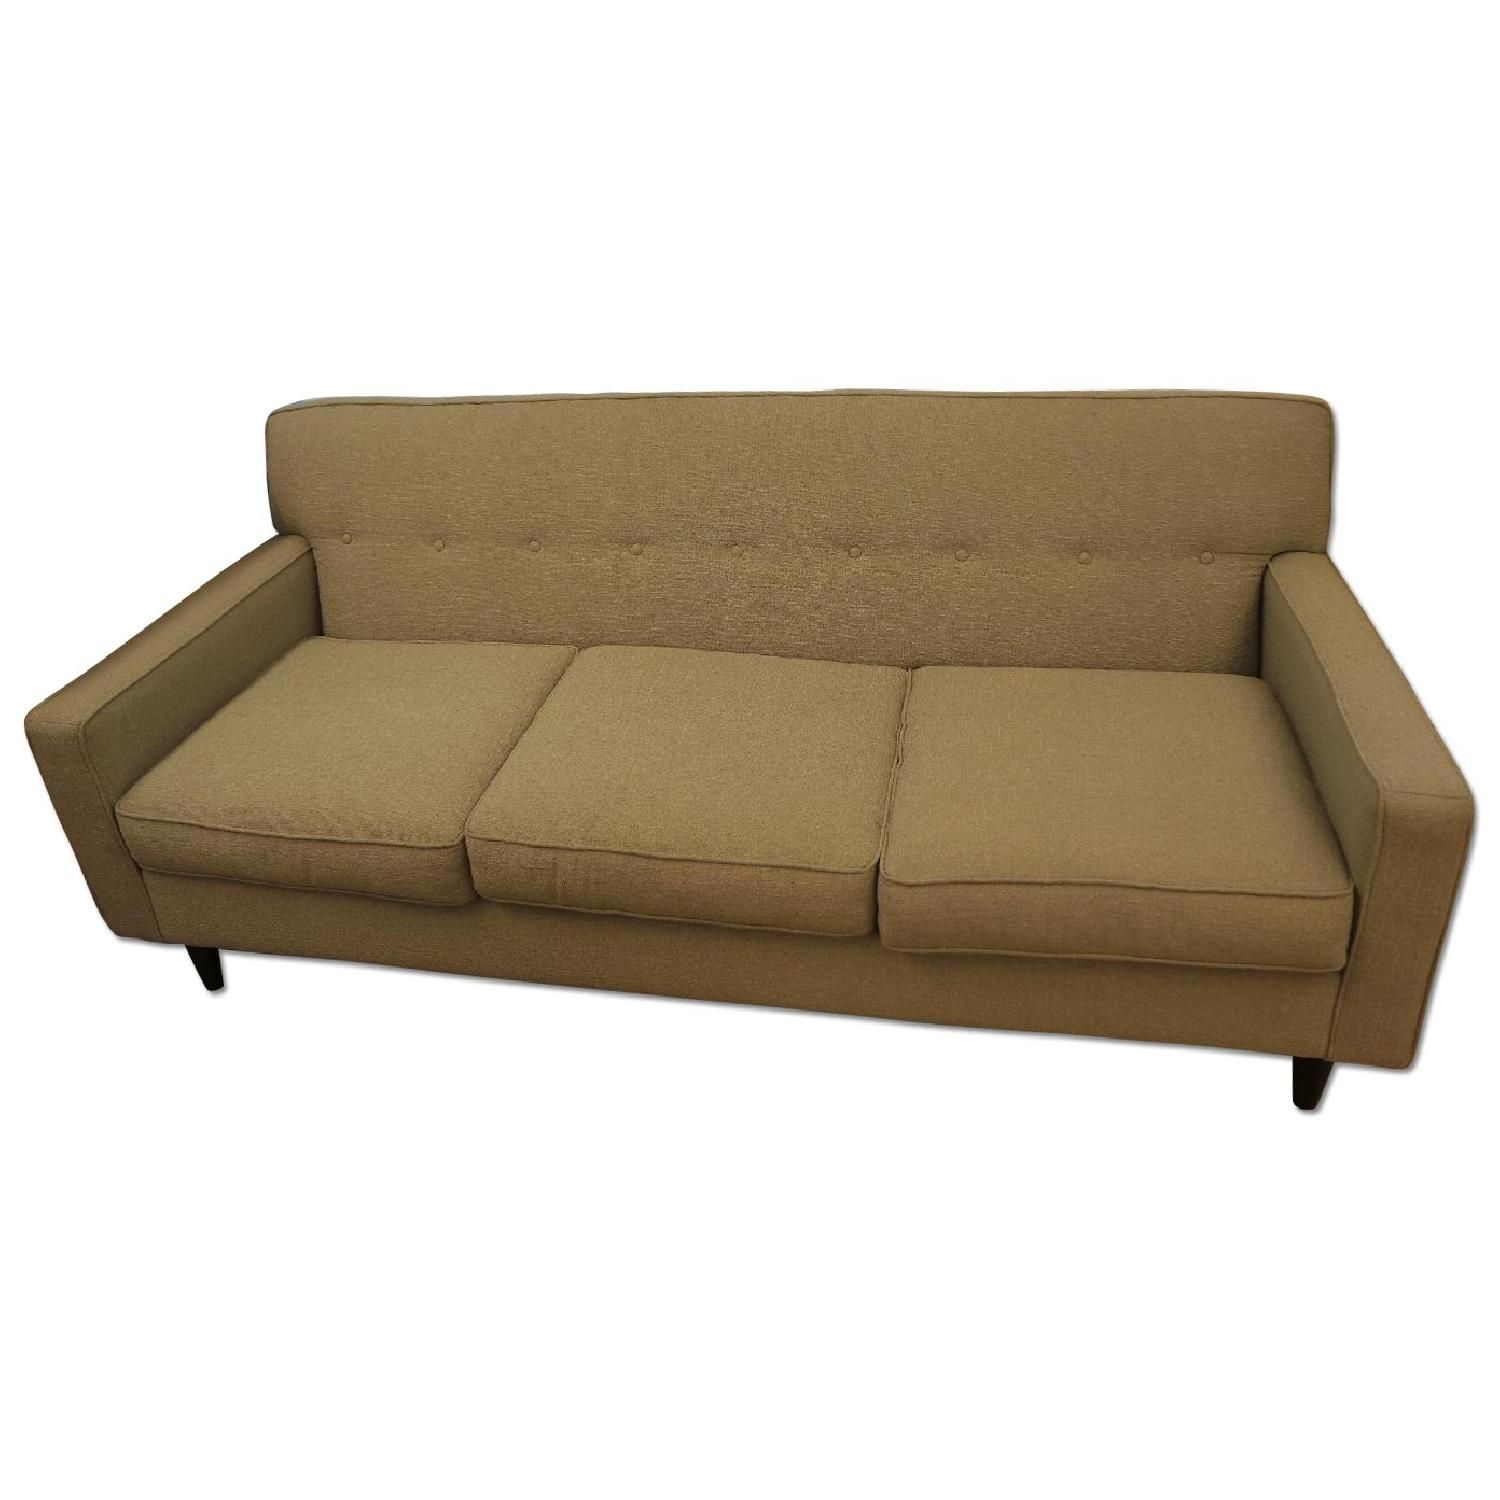 Sofa Mid Century Modern Style Better By Design Mid Century Modern Sofa Sofas